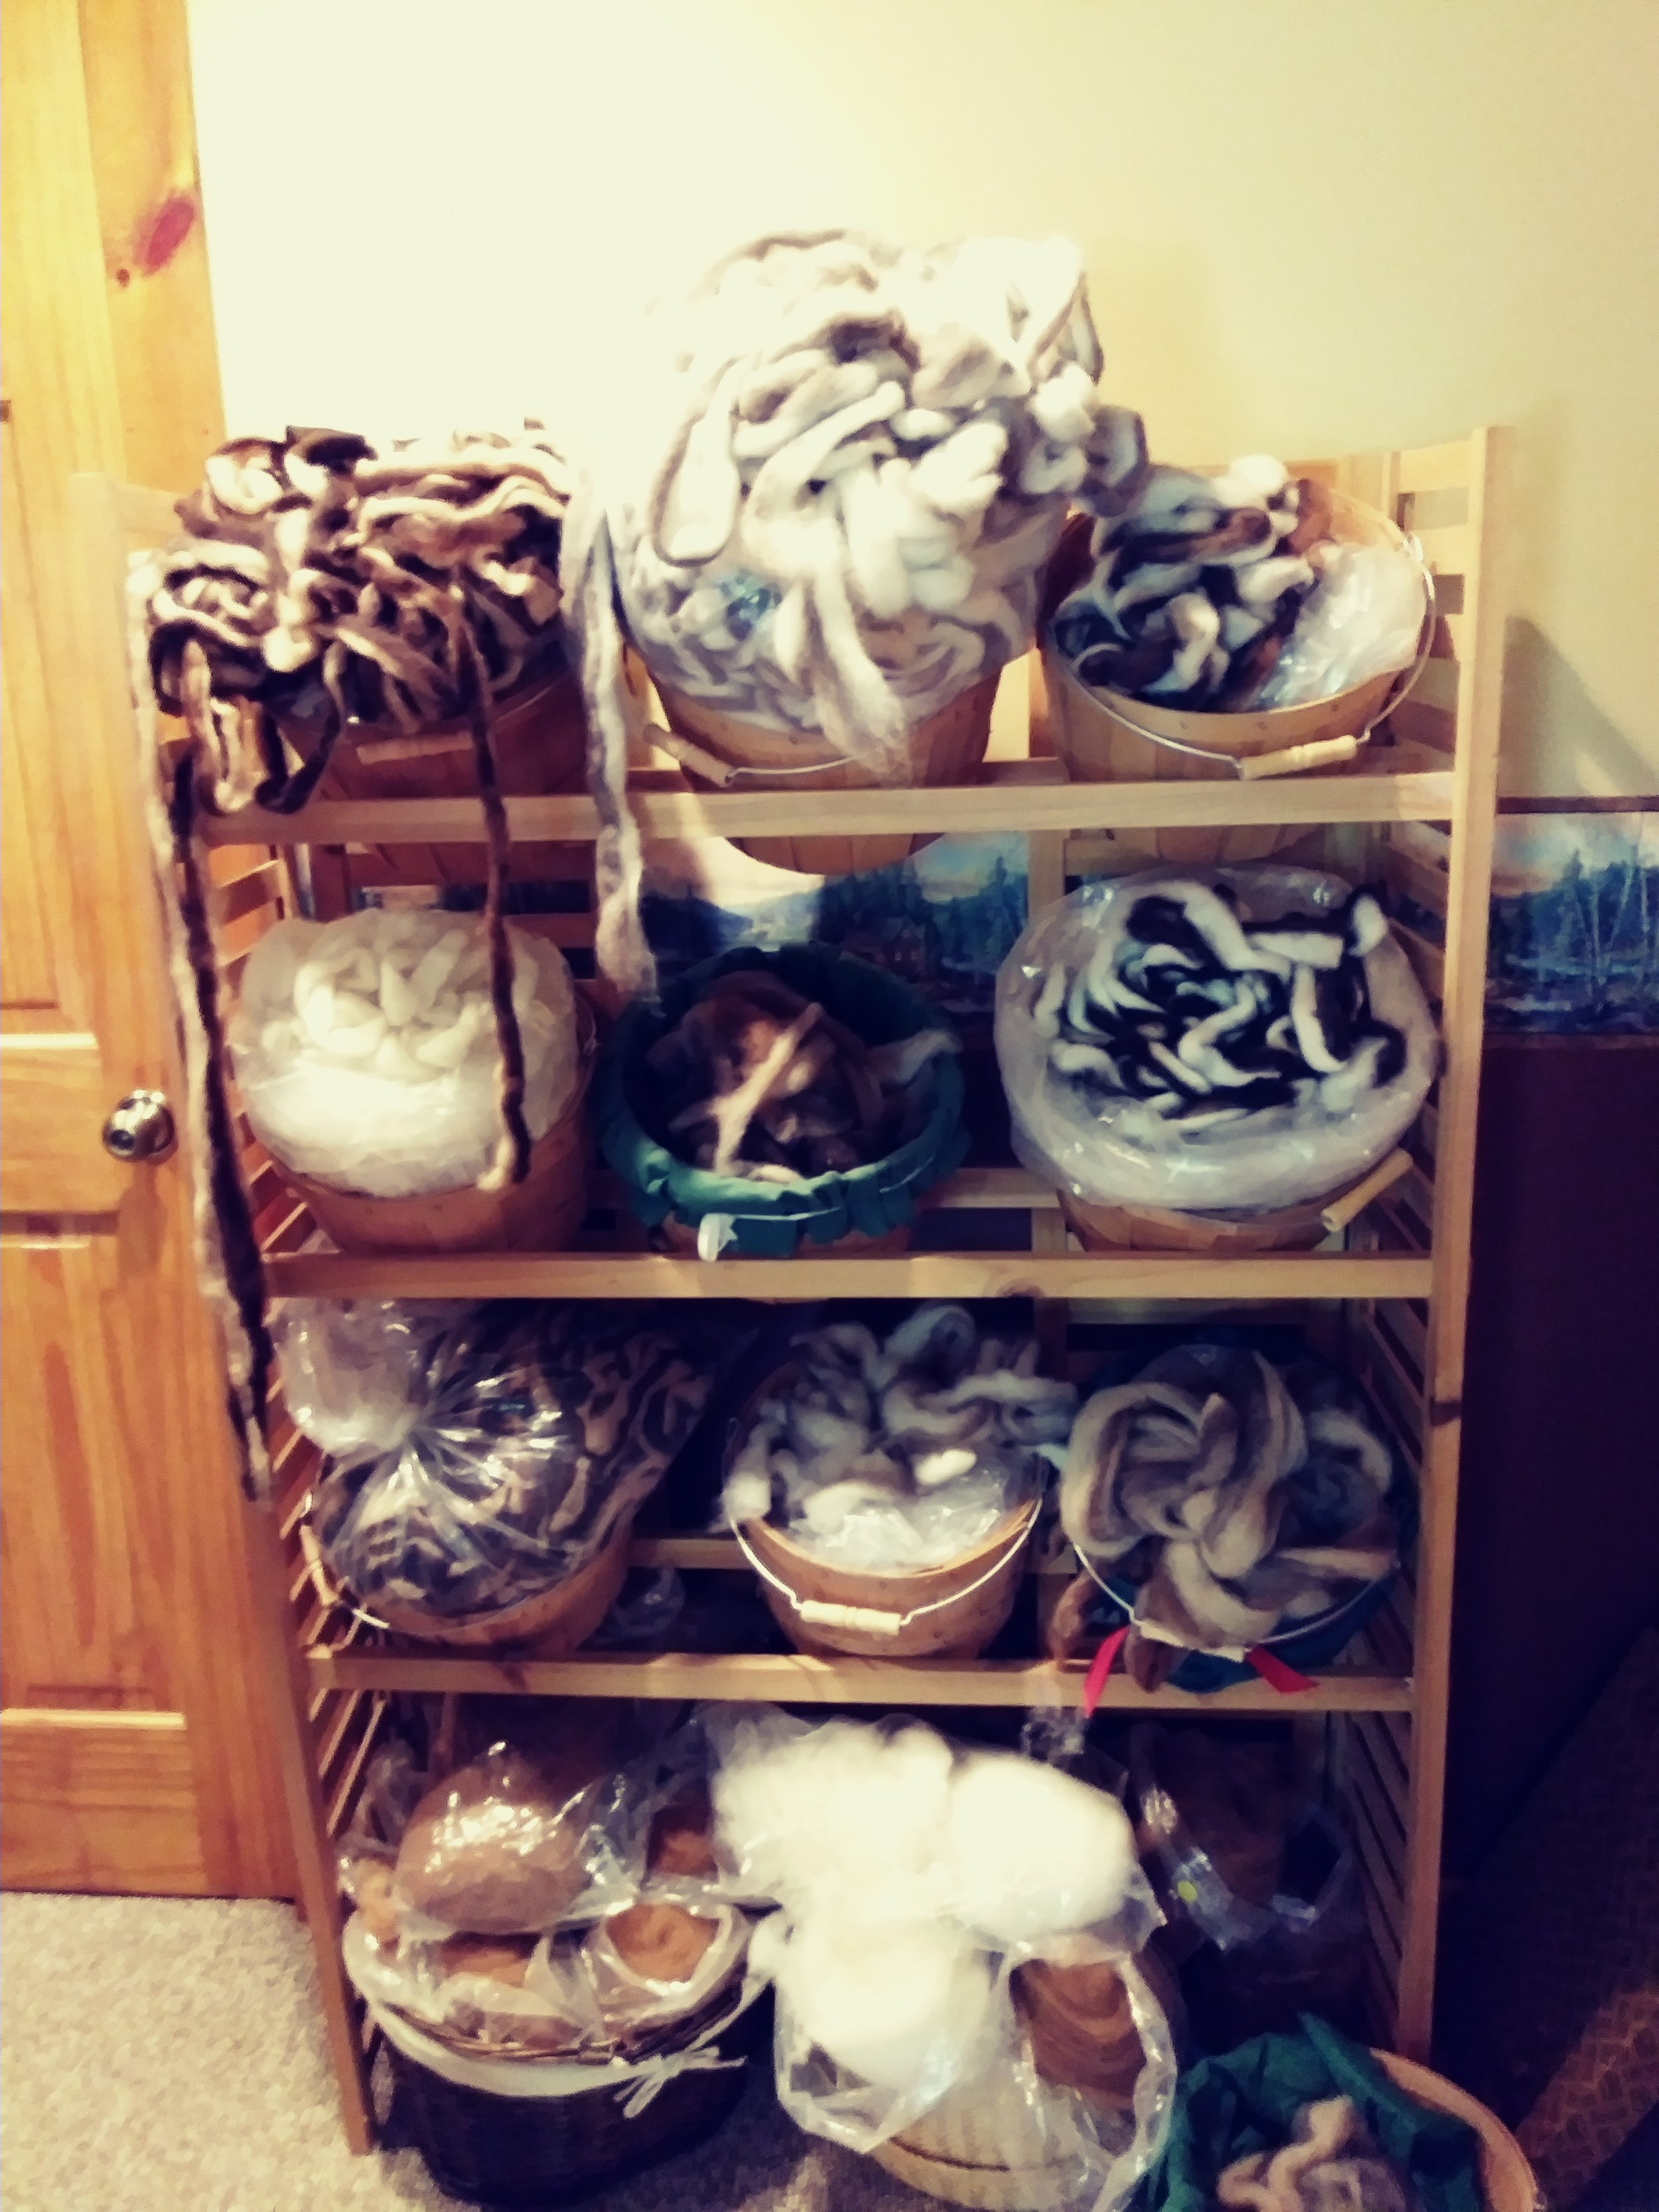 Baskets of Alpaca Roving